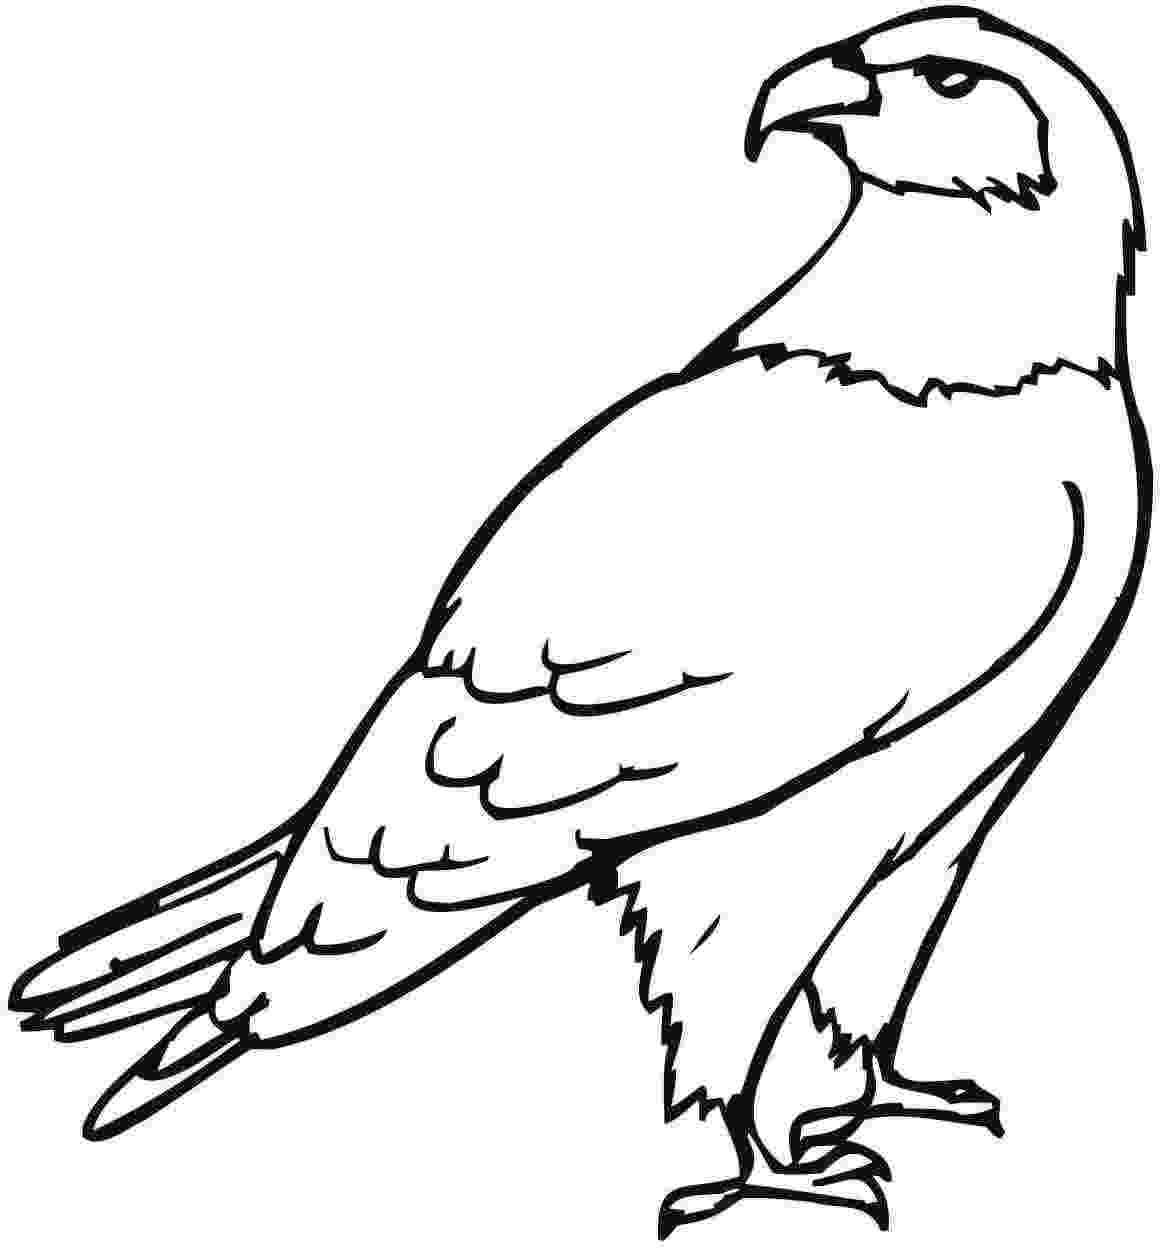 coloring book eagle free printable eagle coloring pages for kids book coloring eagle